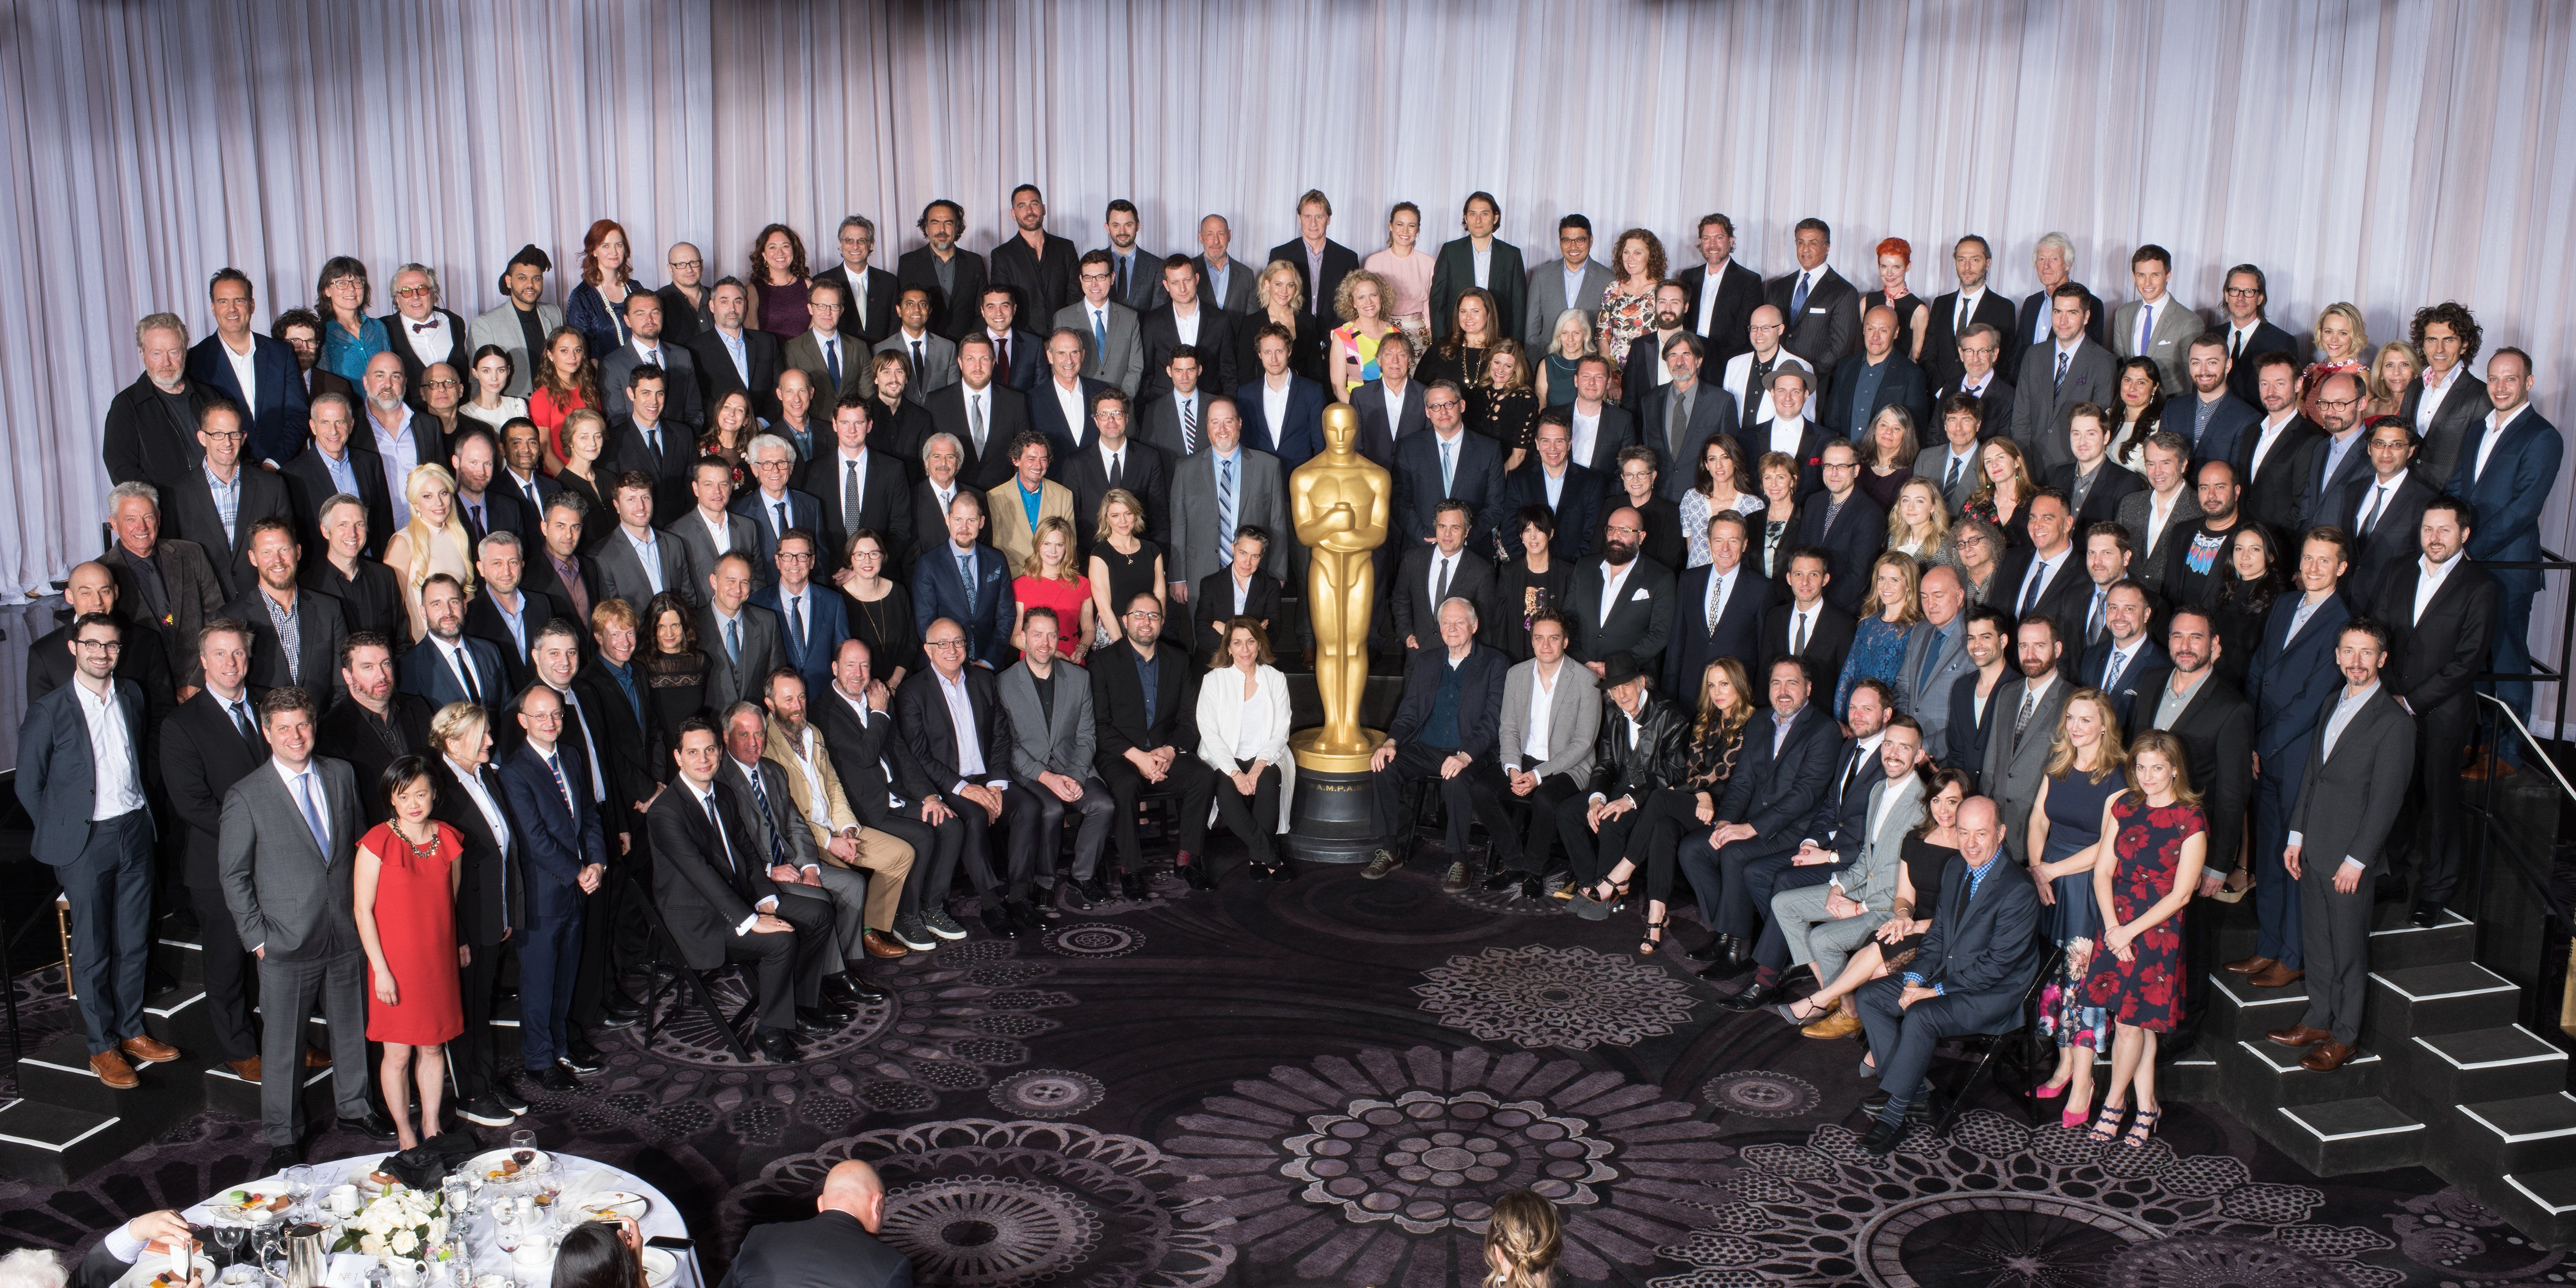 Nominees for the 88th Oscarsvat the Nominees Luncheon at the Beverly Hilton, Monday, February 8, 2016. The 88th Oscars, hoste